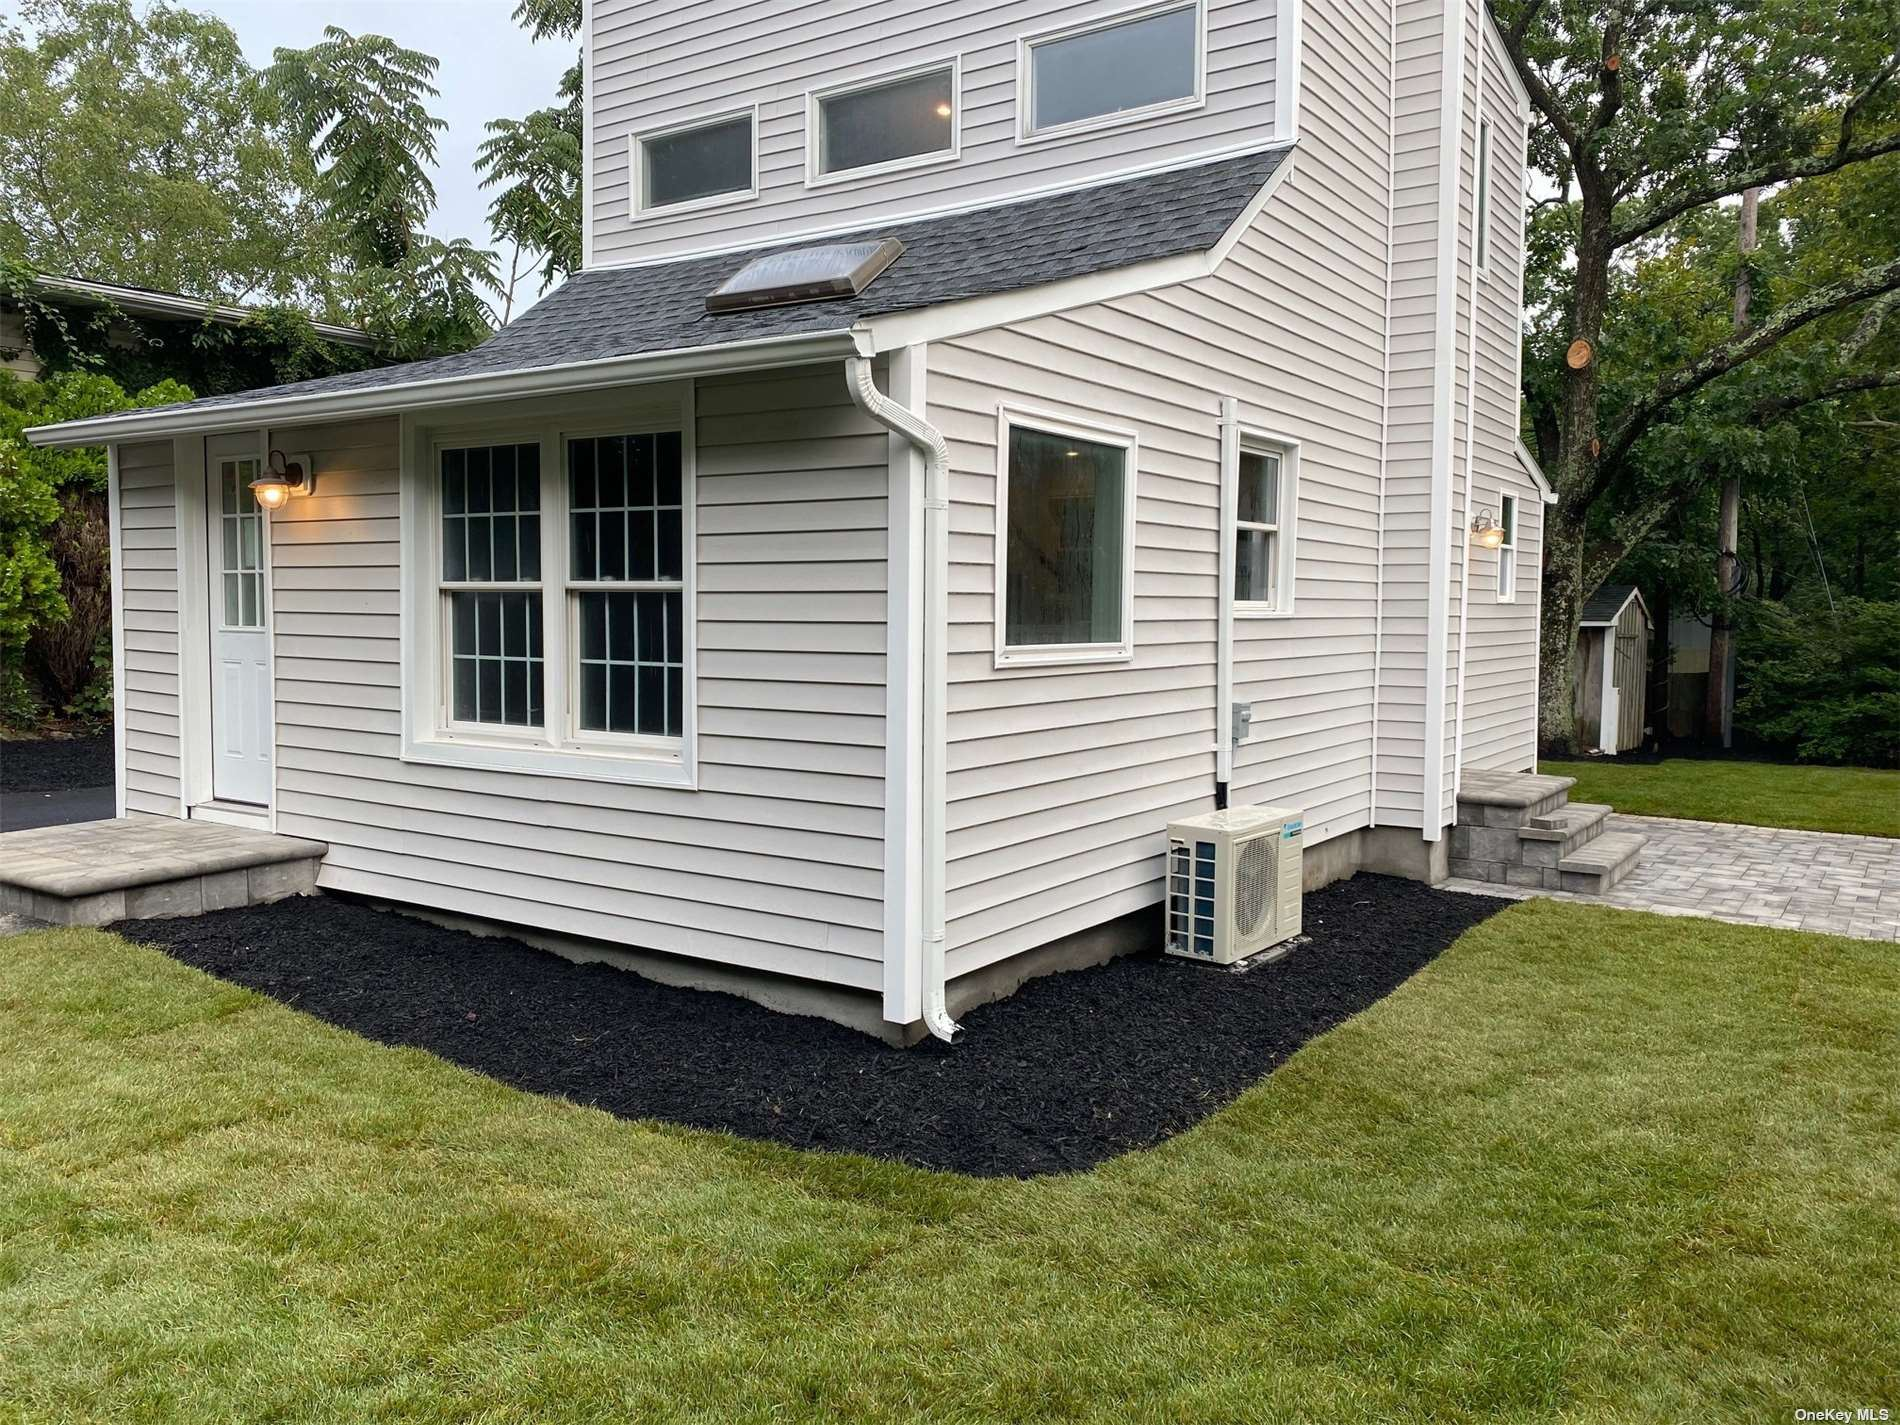 79 B Traction Boulevard, North Patchogue, NY 11772 - MLS#: 3343010